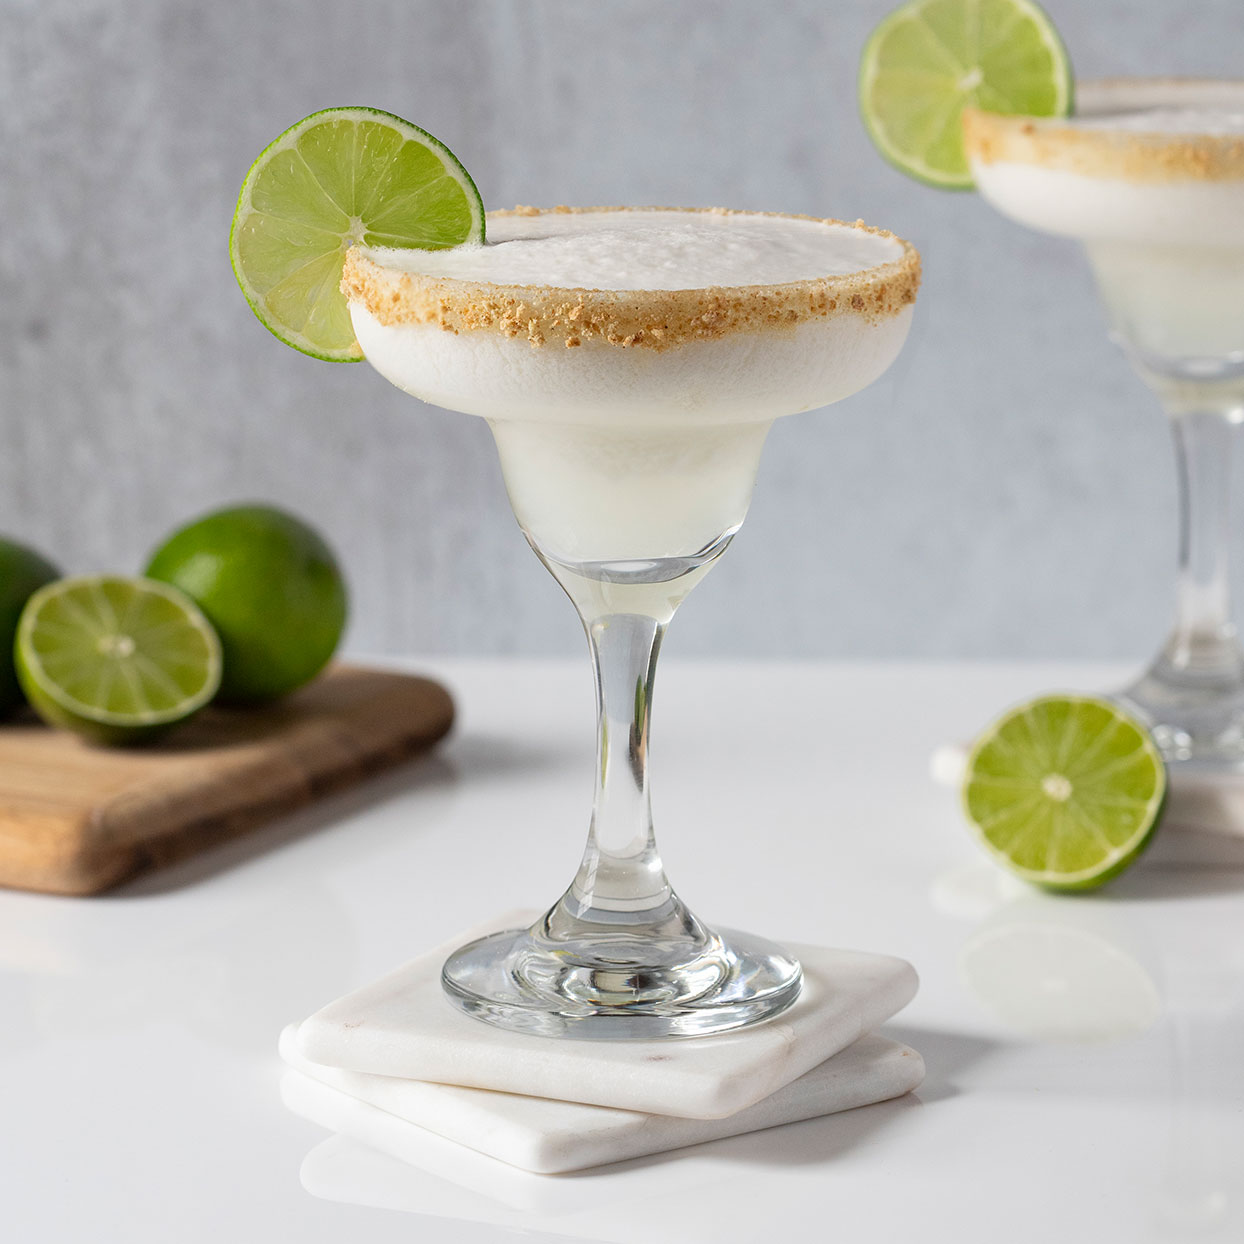 Frozen Key Lime Pie Margaritas Trusted Brands